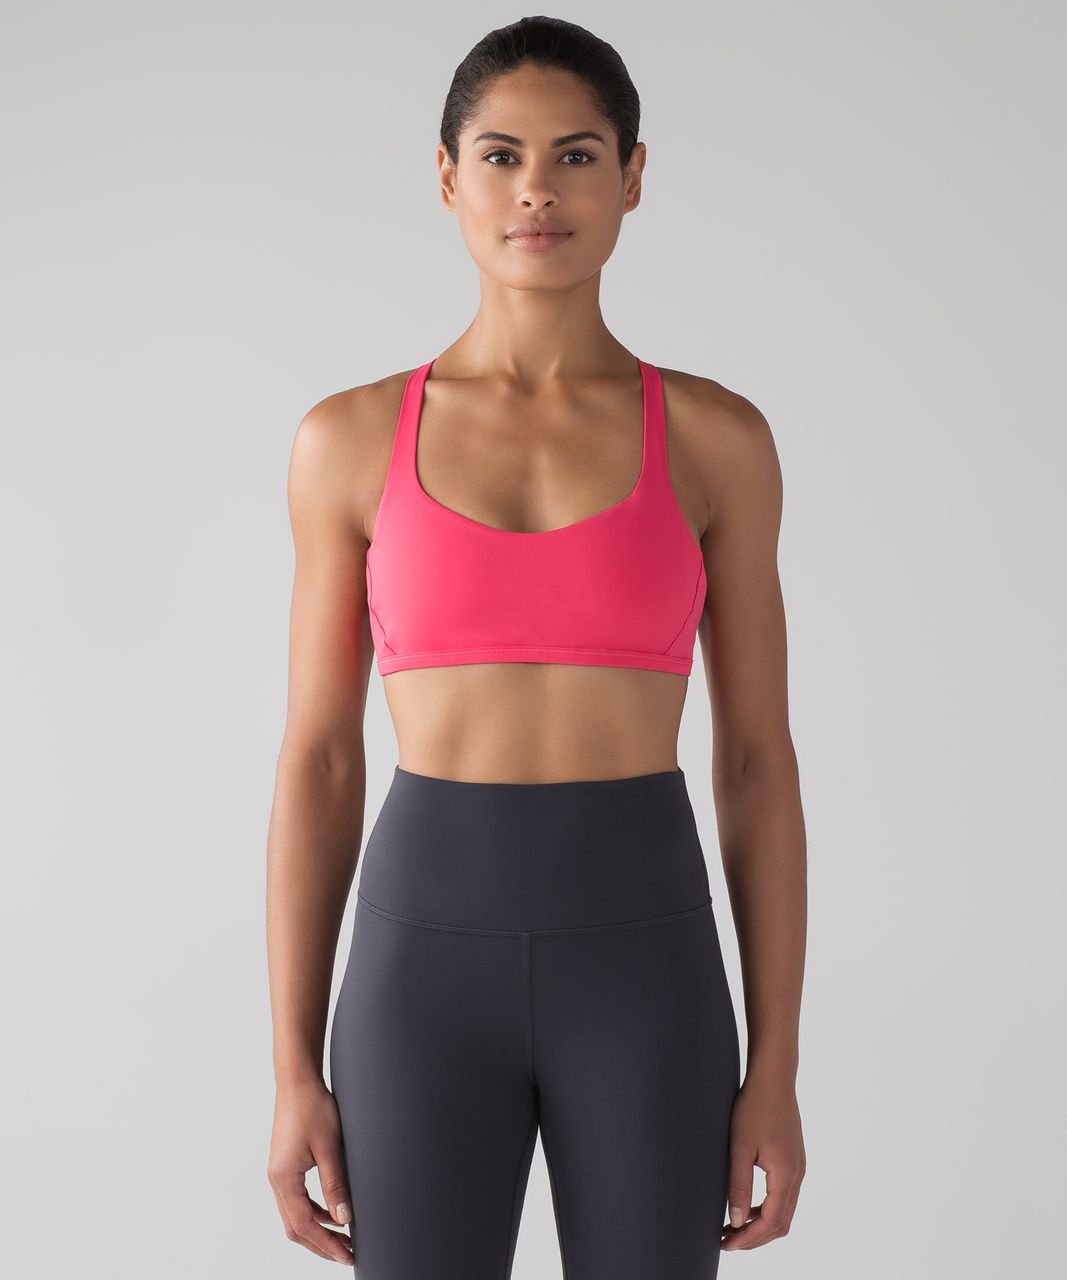 Lululemon Free To Be Zen Bra - Lip Gloss